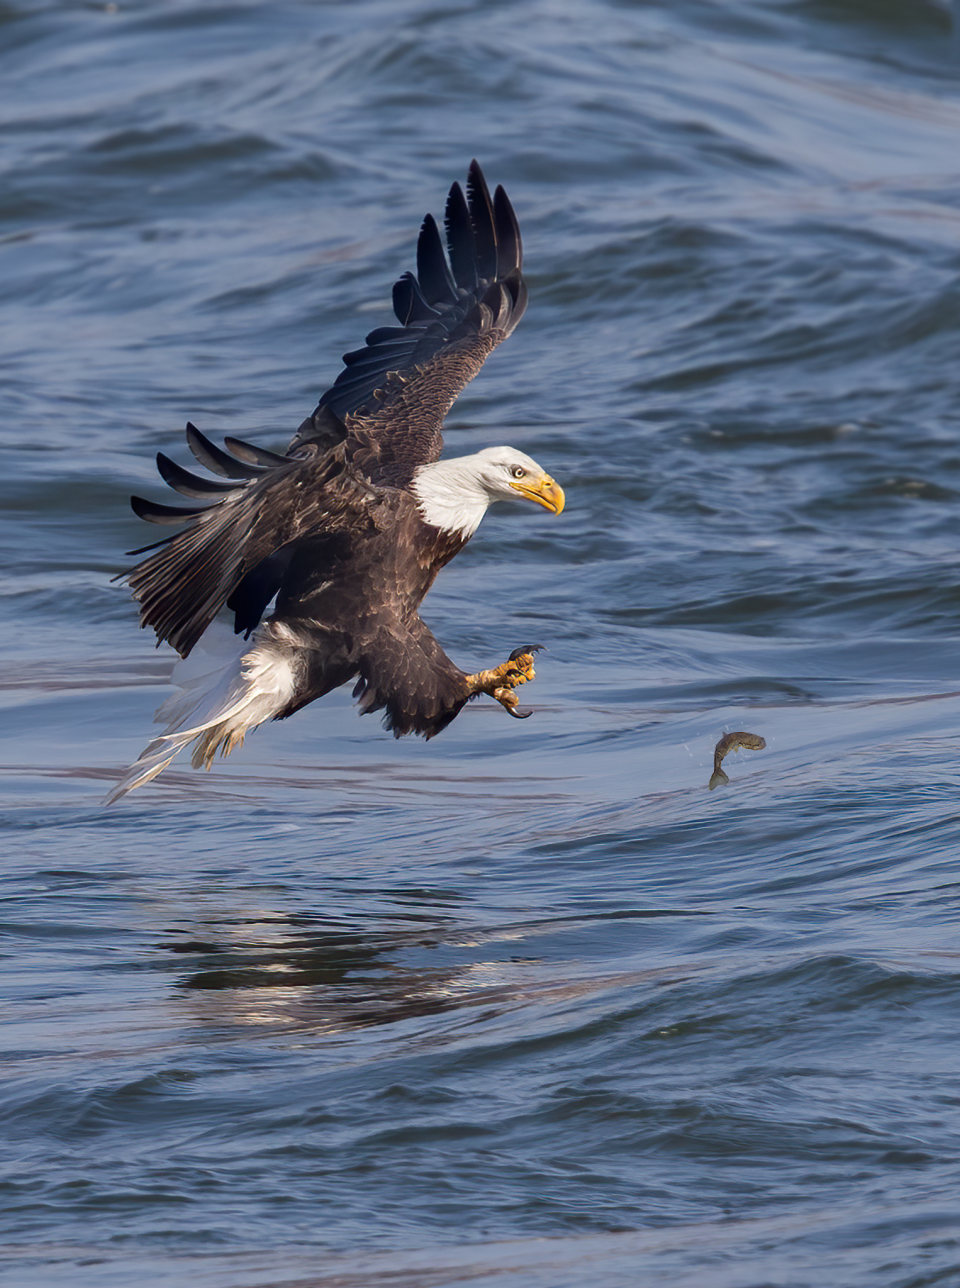 Bald Eagle photographed with EF 600mm f/4L IS II USM Lens with 2x Teleconverter, f/9, 1/250 second, ISO 1000 © David Speiser